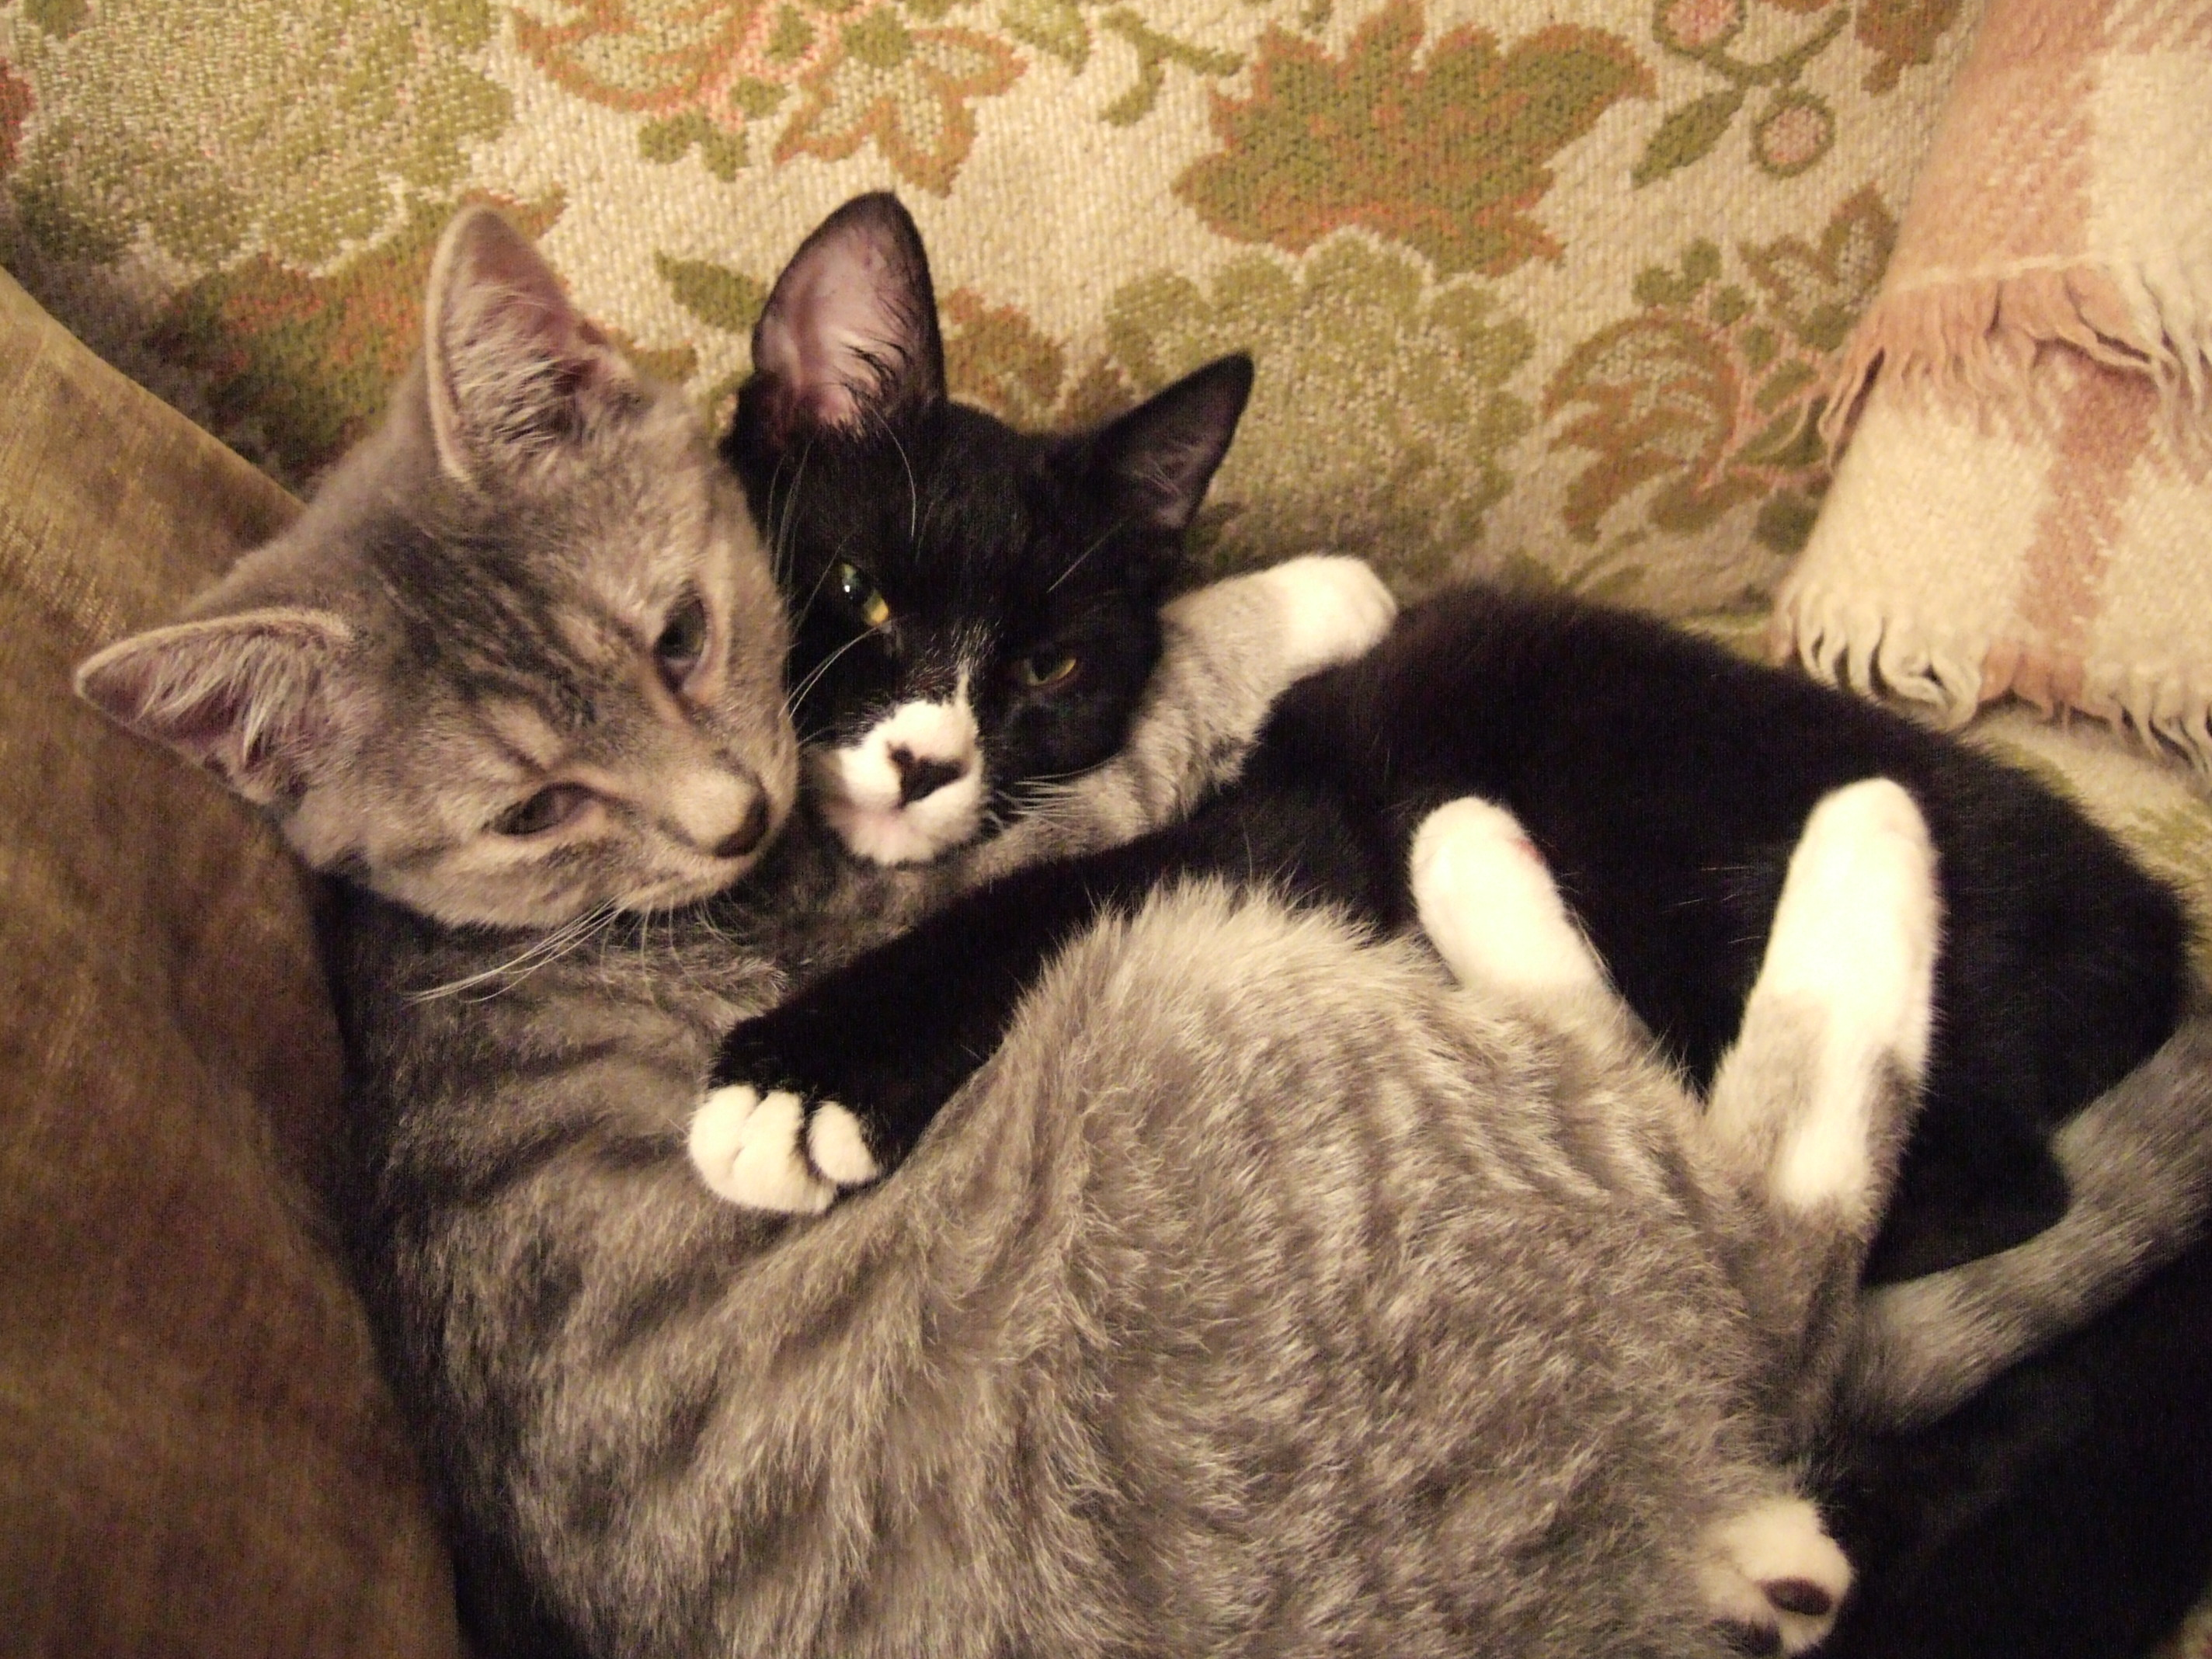 Friends forever! Science reporter Amy Standen's cats are besties.